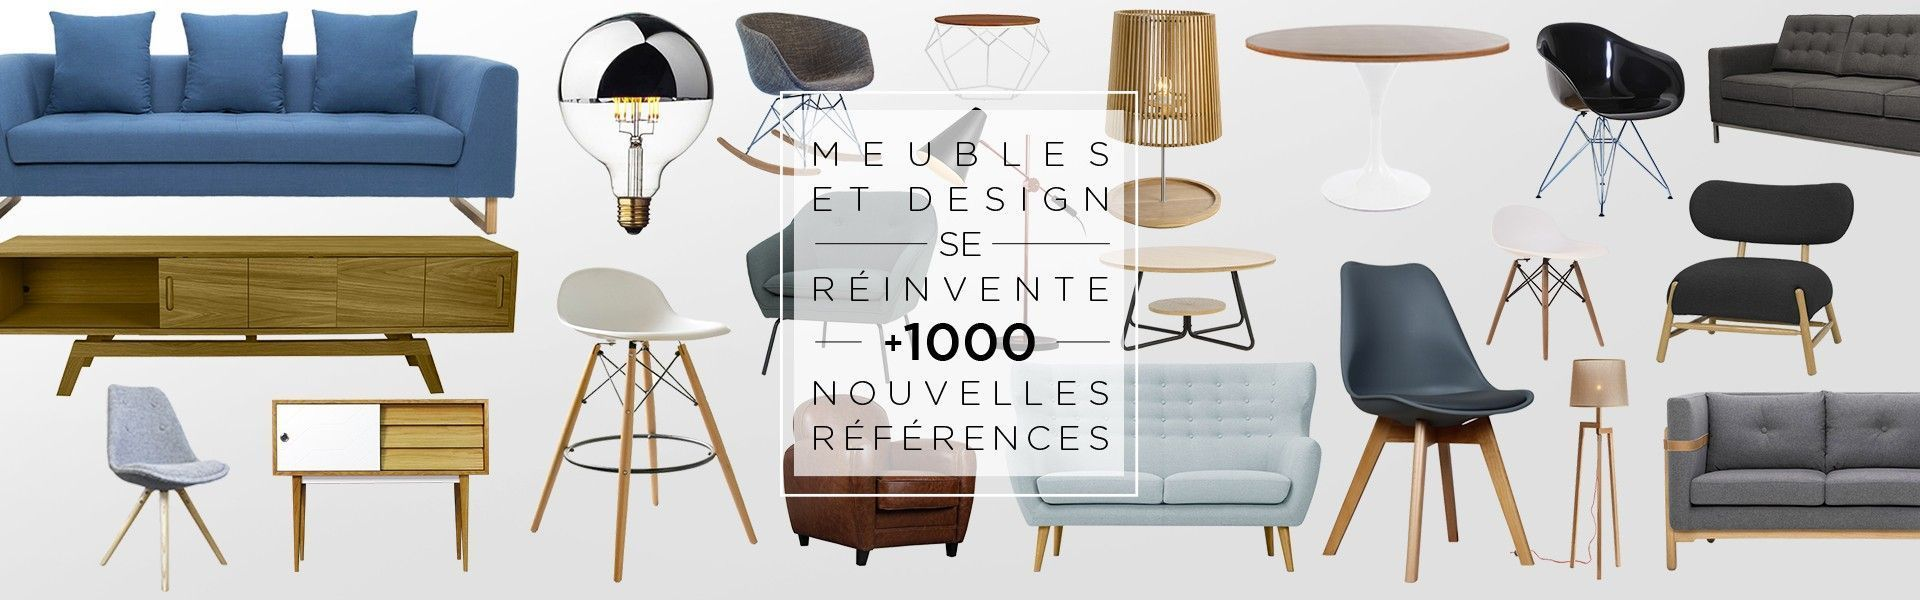 encart mosaique meubles design 1000 references